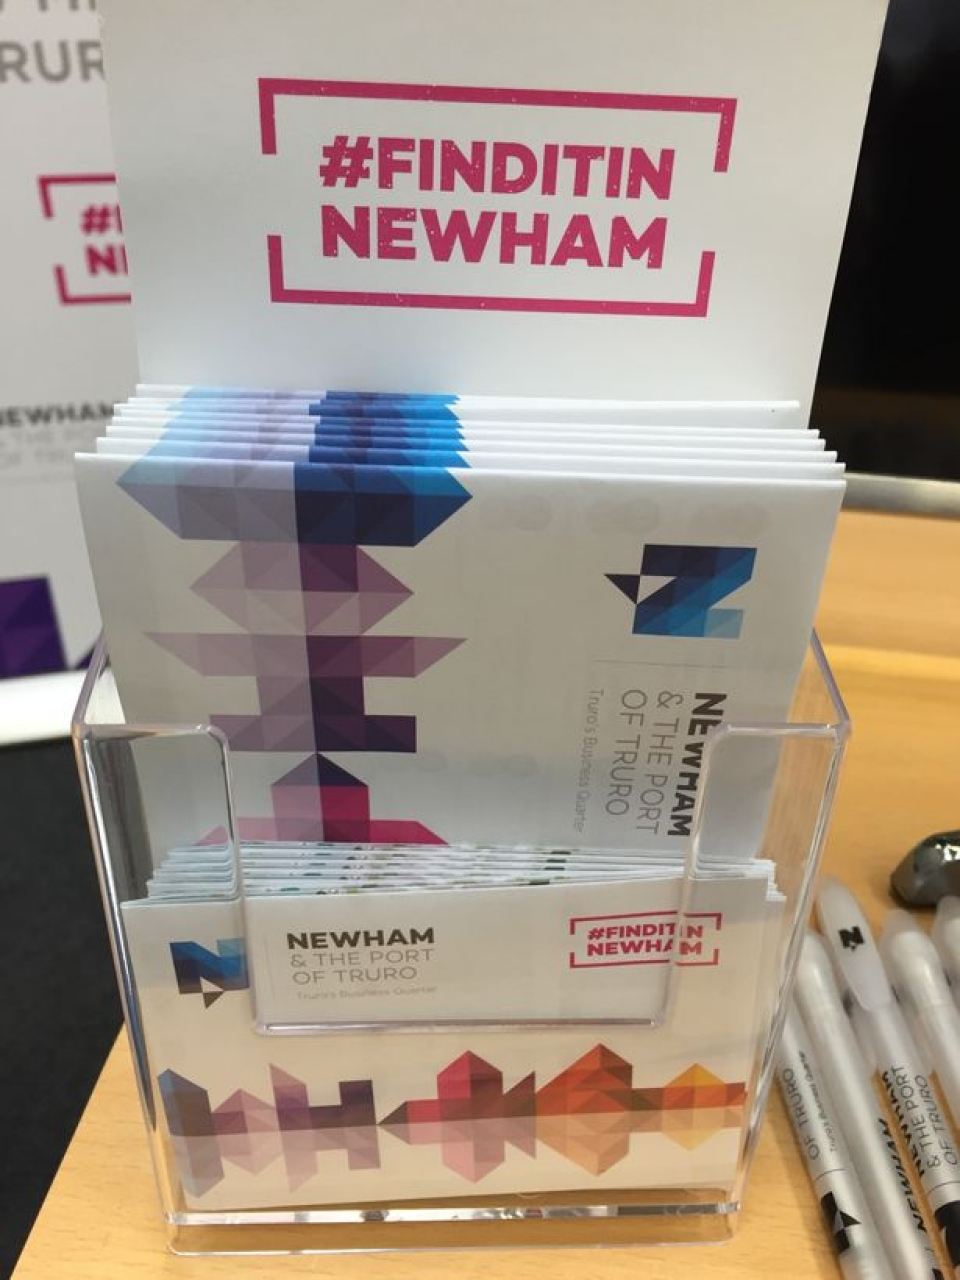 Colourful new initiative puts more than 100 business on the map at Newham